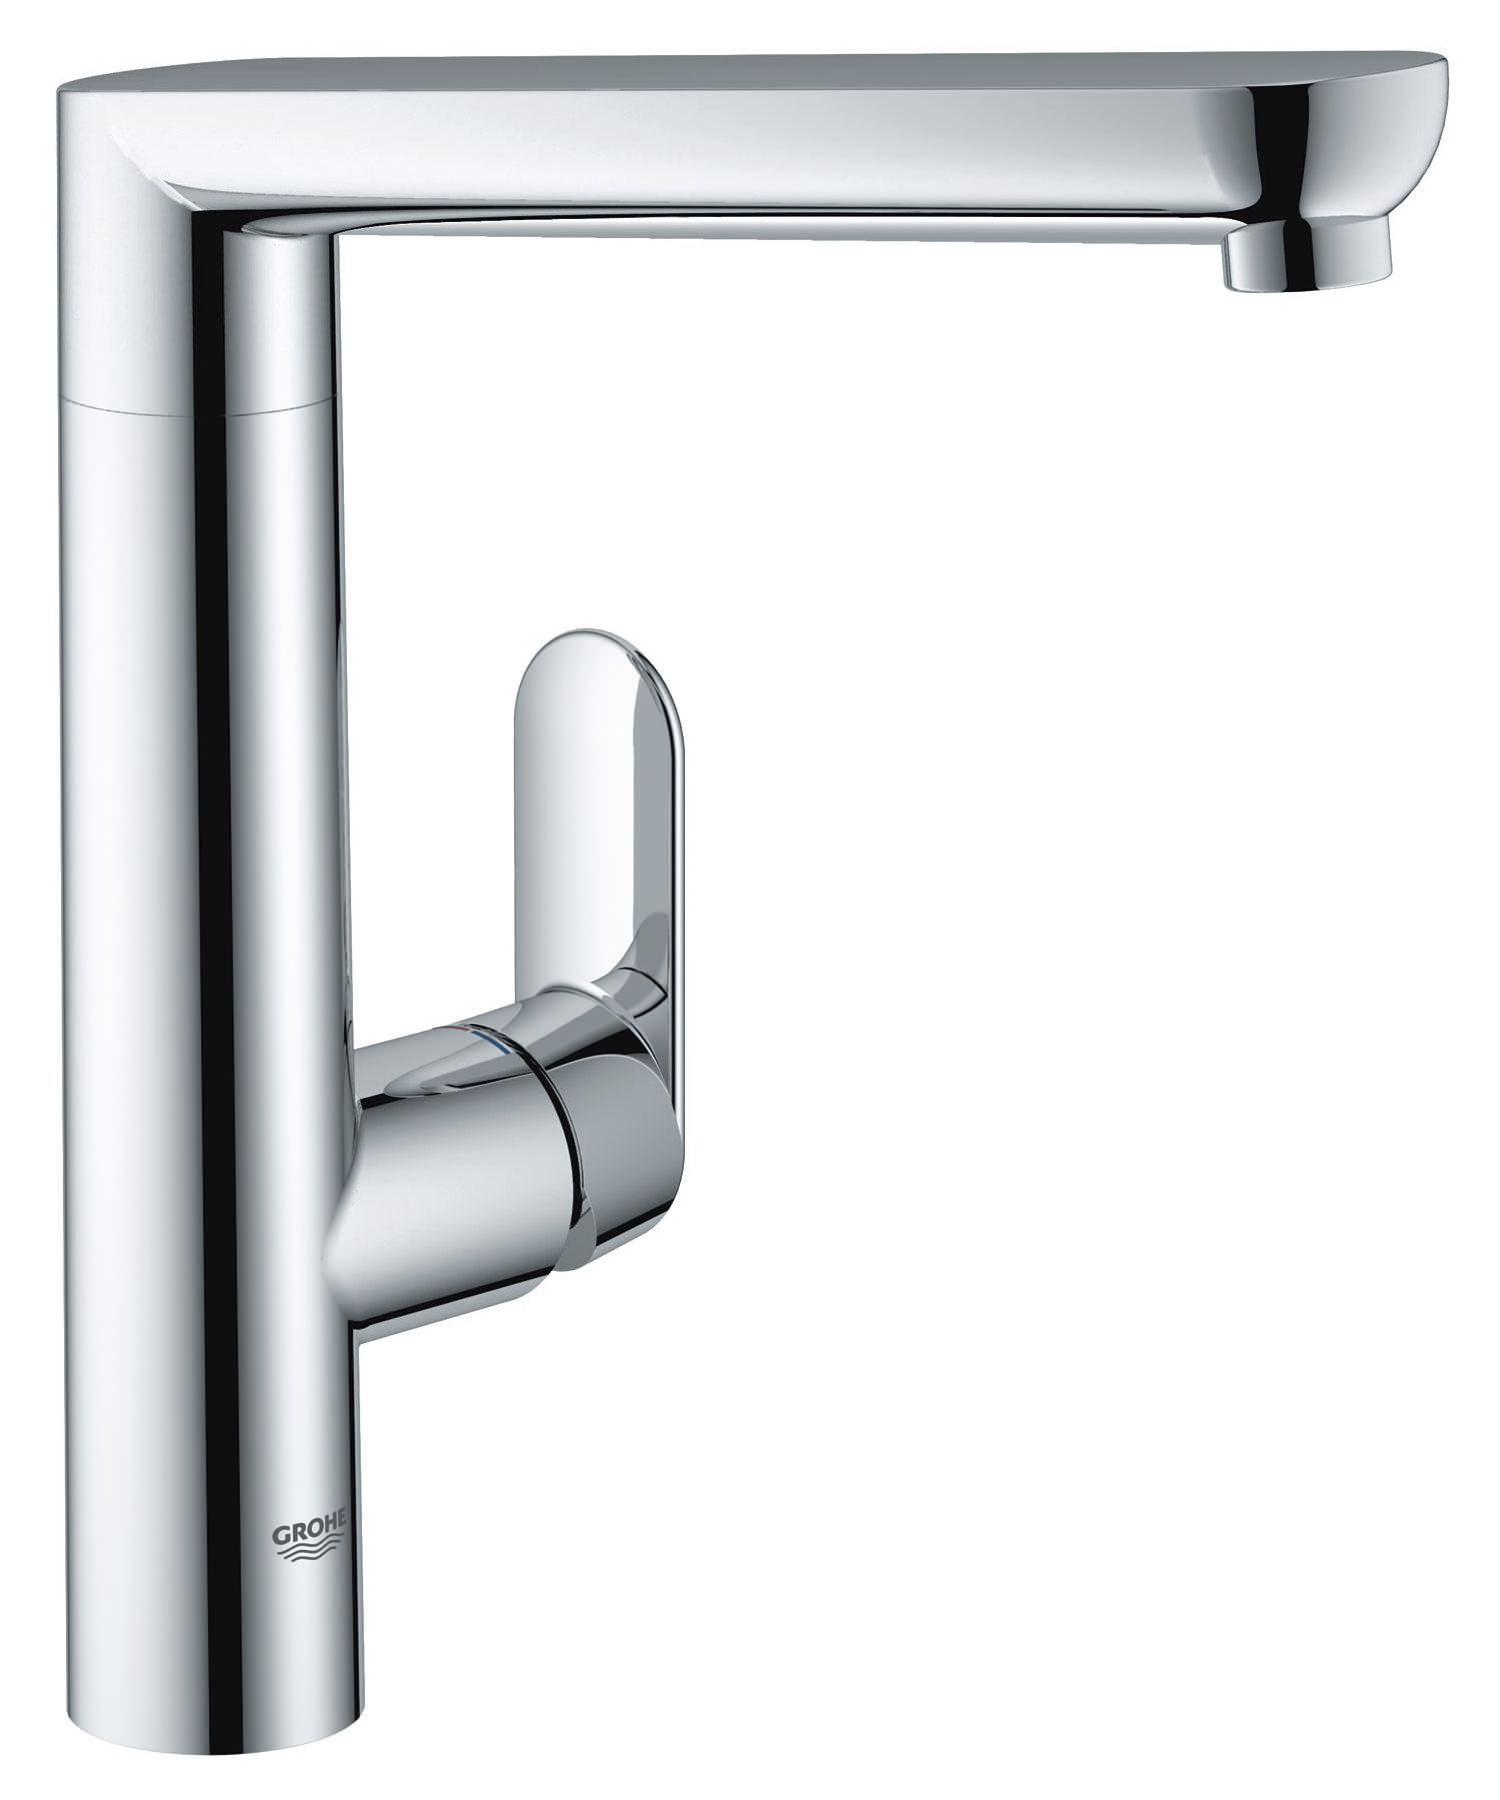 Grohe Costa tap projection 225 mm  30484001  REUTER Shop